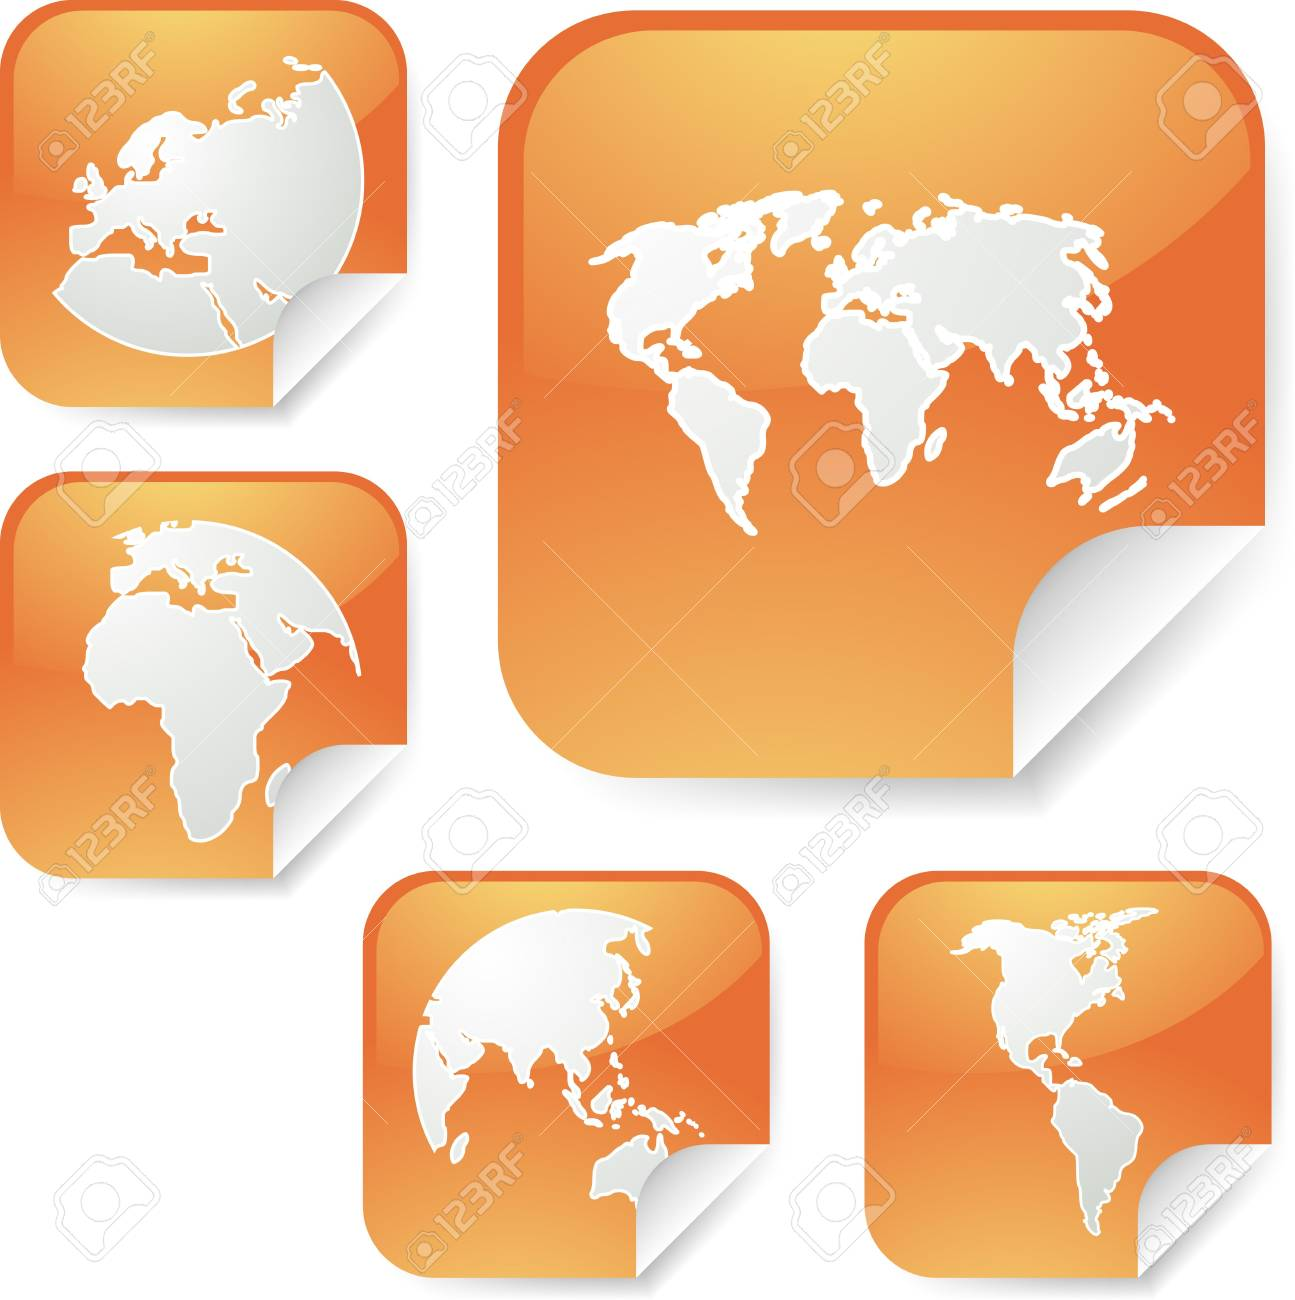 world map icons on square sticker shapes stock photo picture and